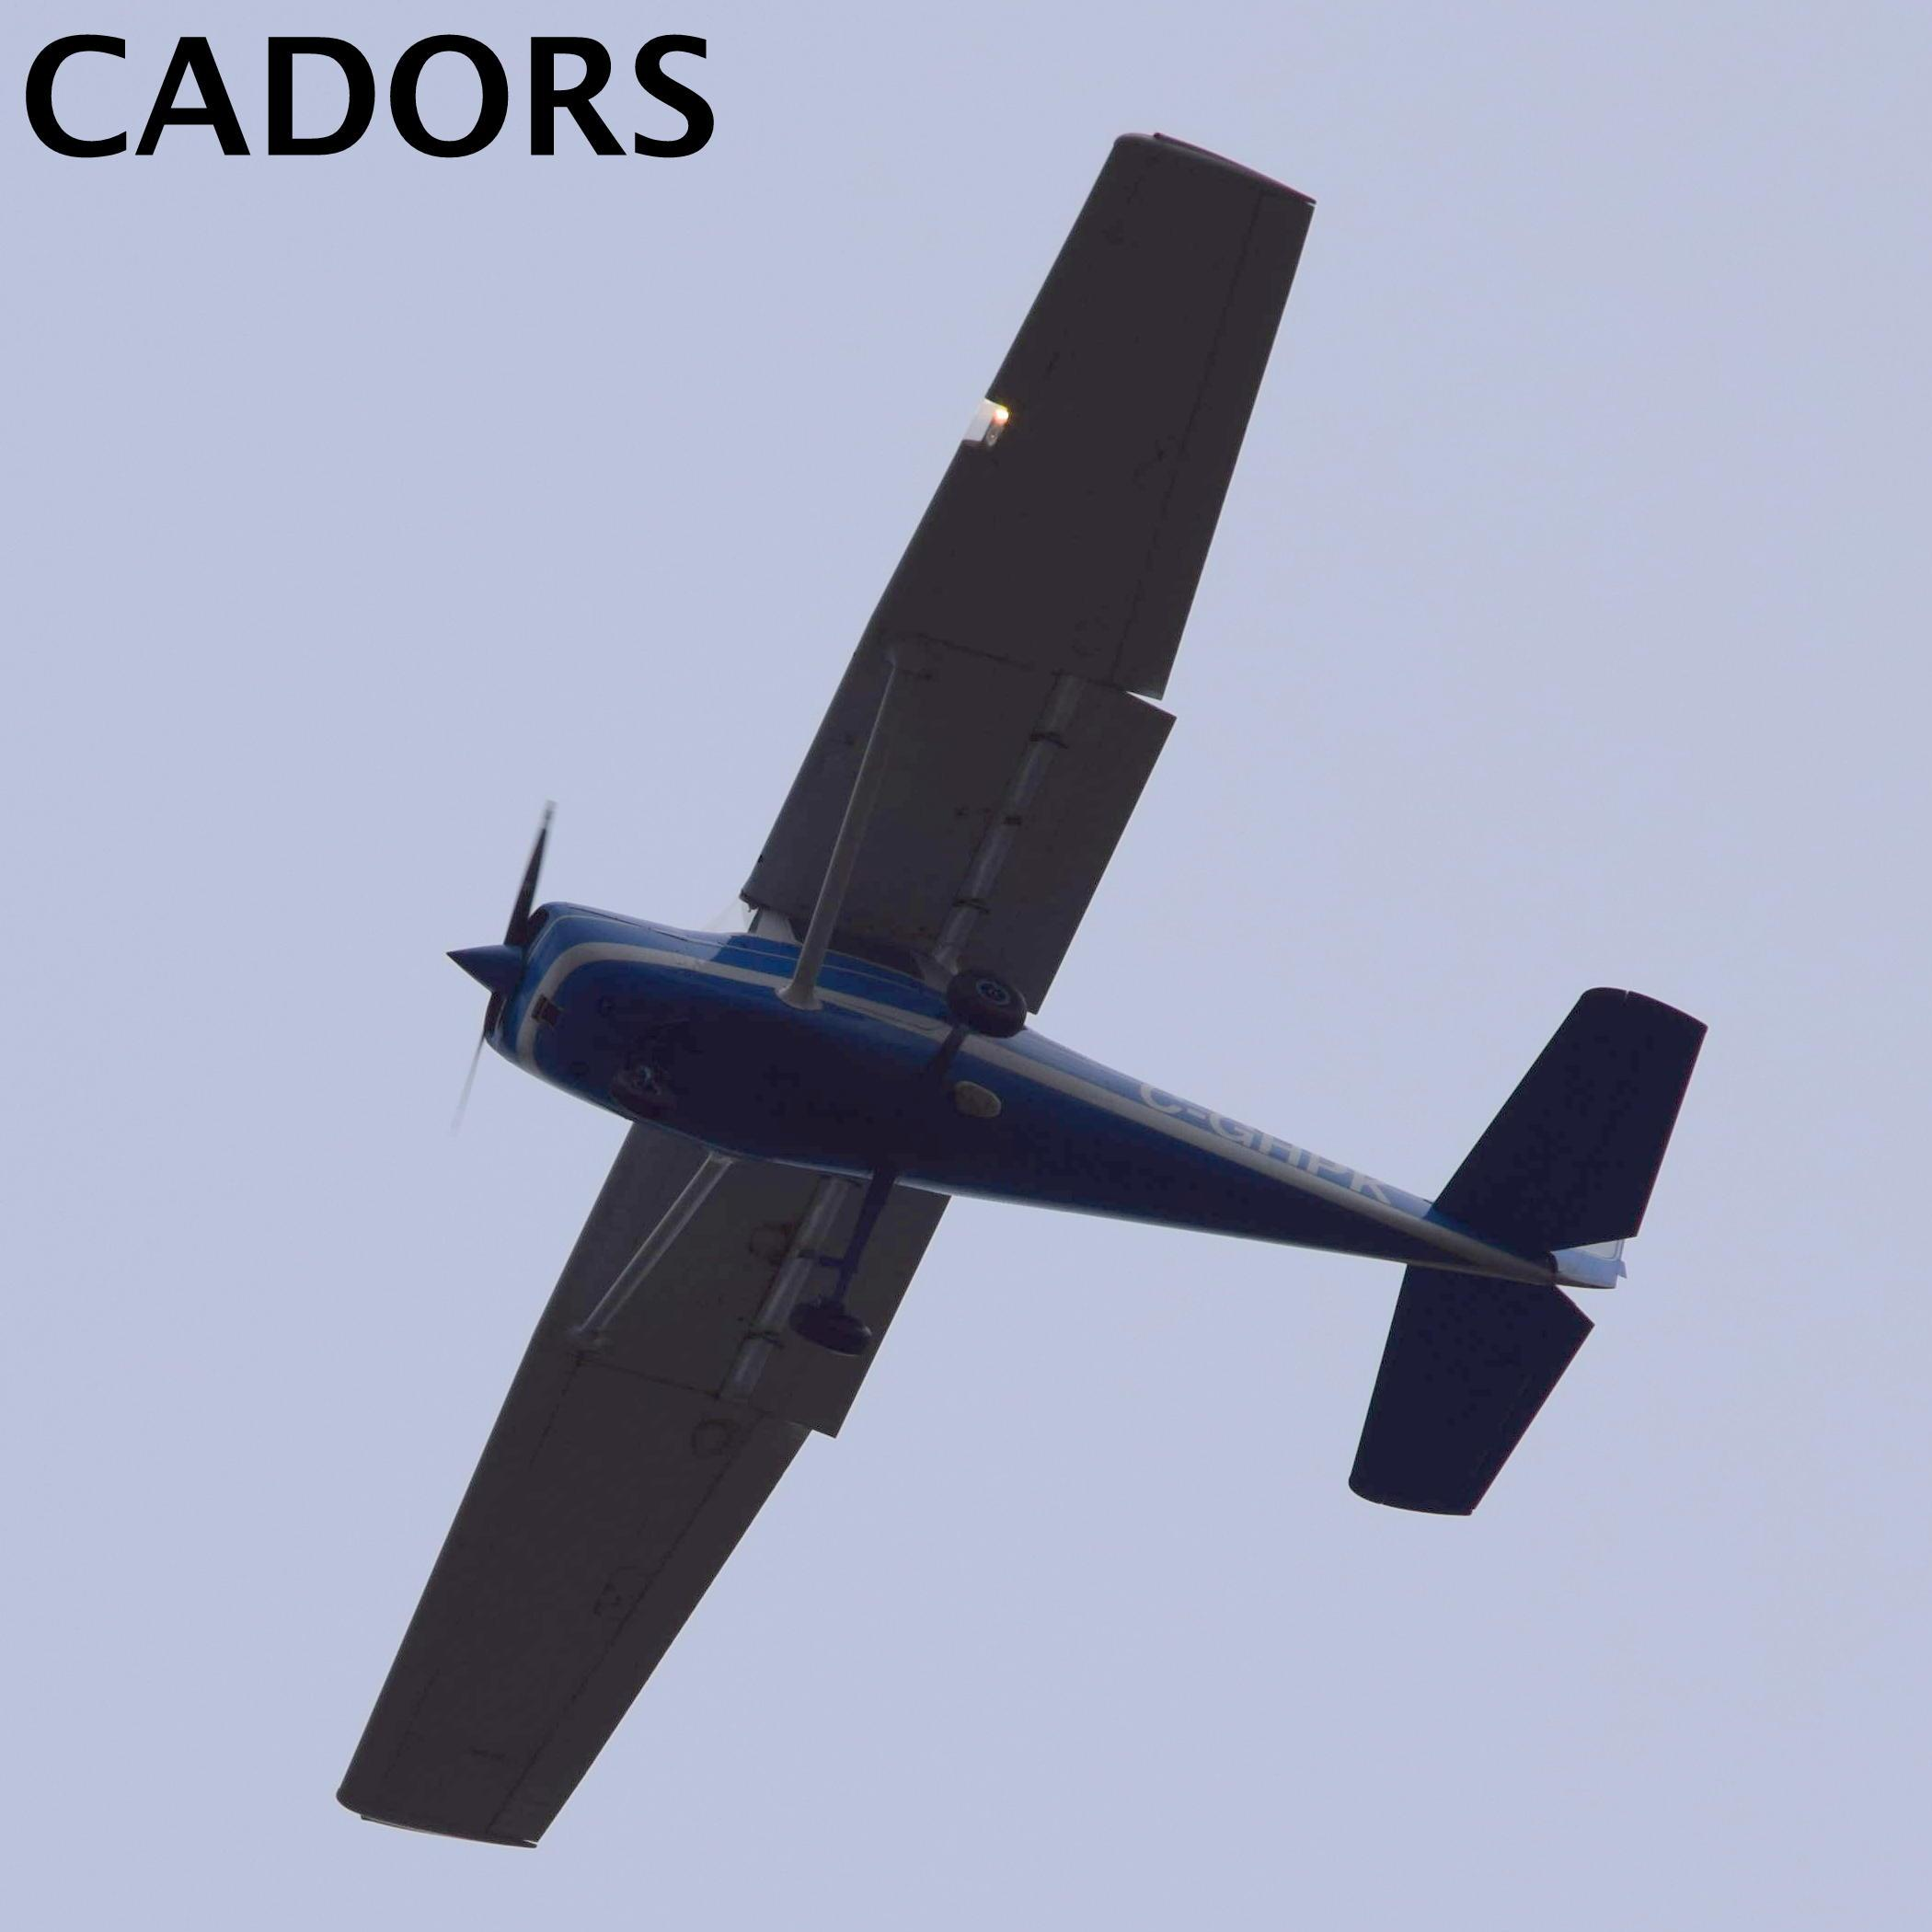 CADORS - Civil Aviation Daily Occurrence Reporting System - Canada show art